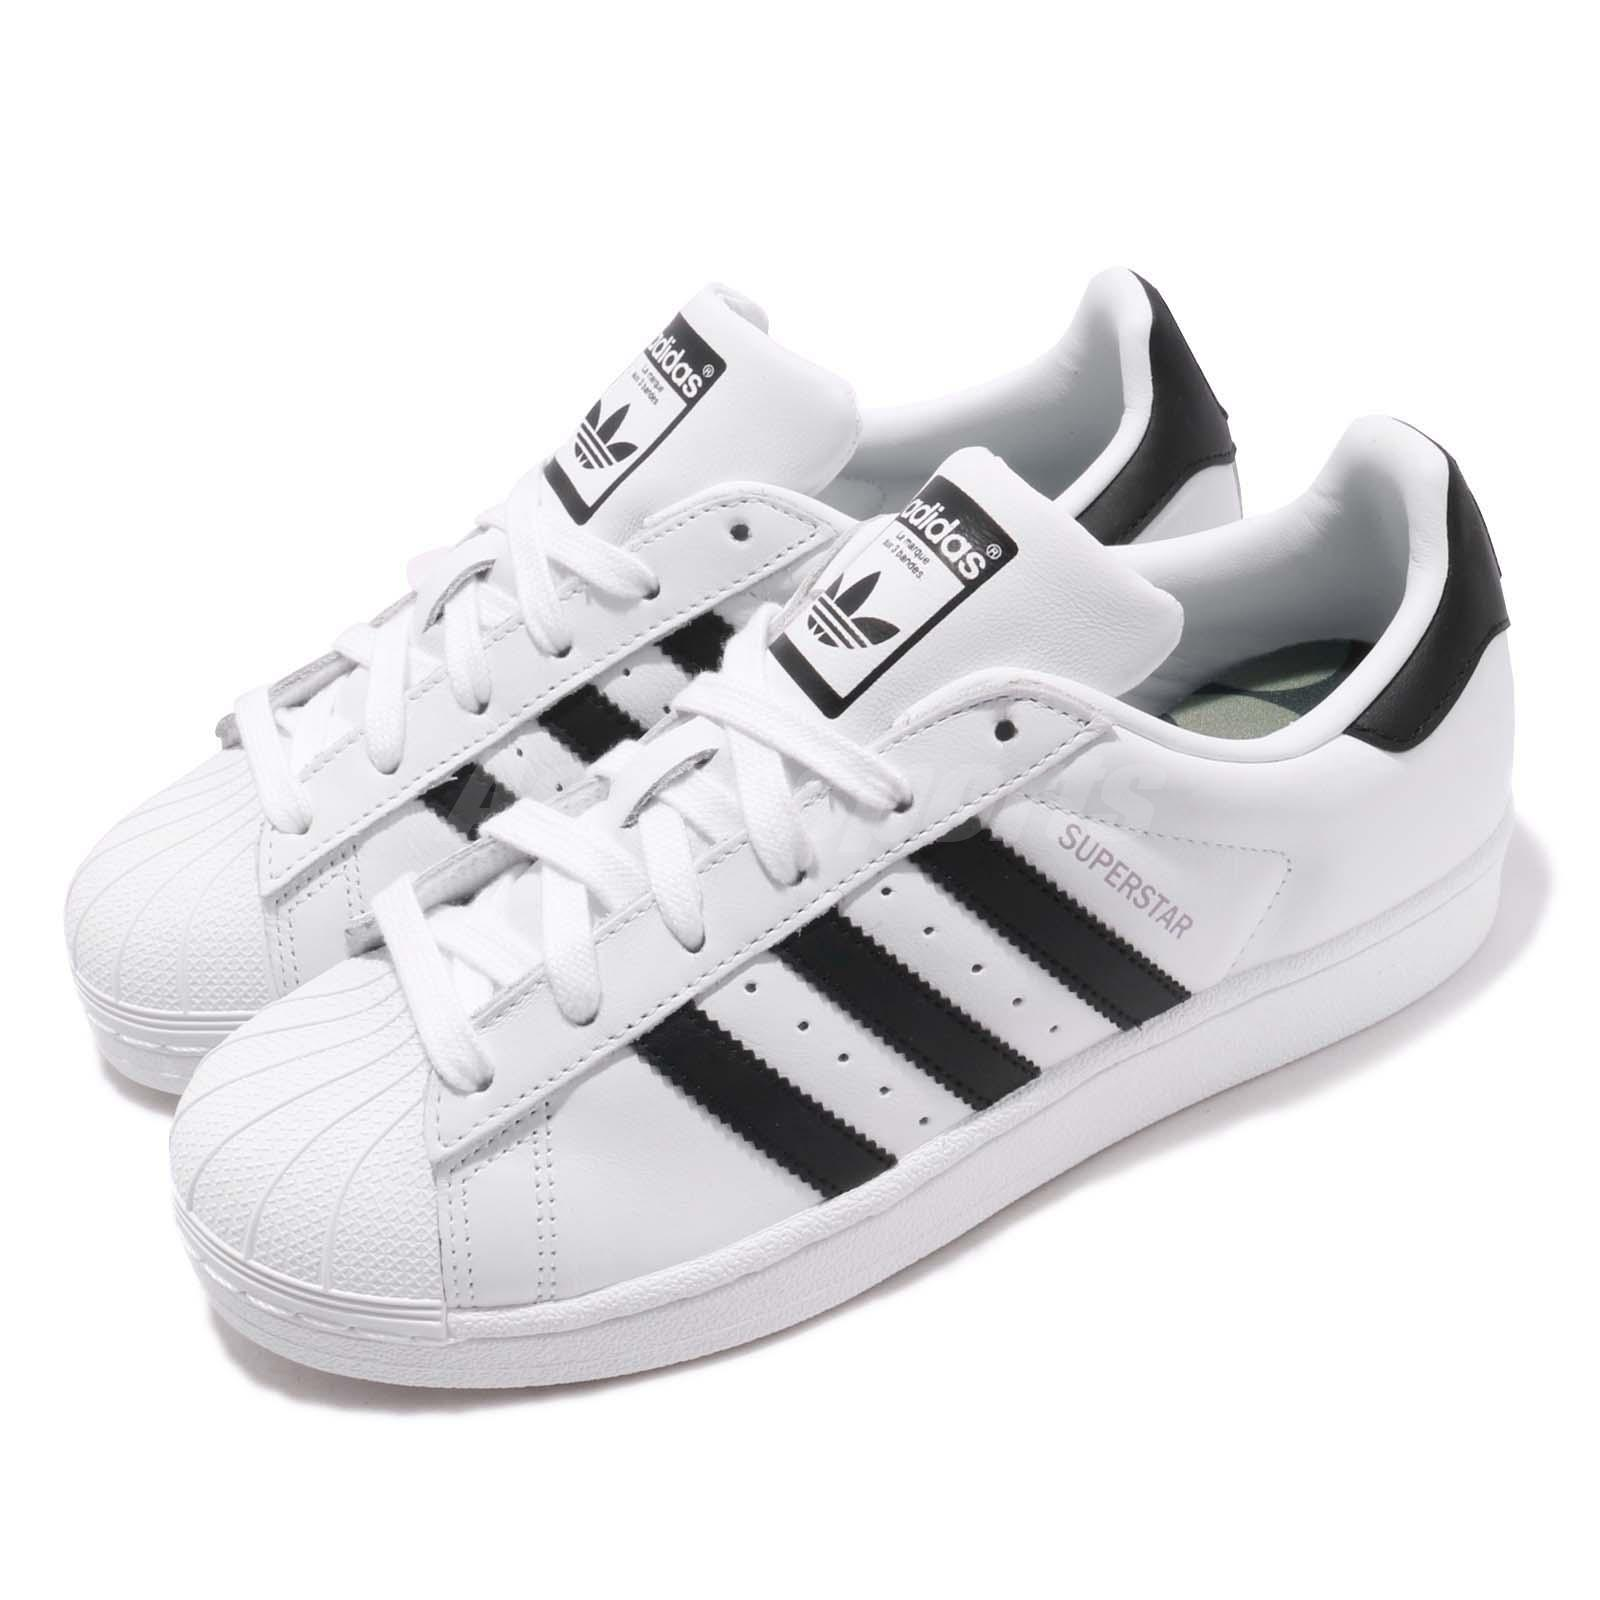 le dernier 57842 f2a84 Details about adidas Originals Superstar W Hattie Stewart White Black Women  Casual Shoe CM8414